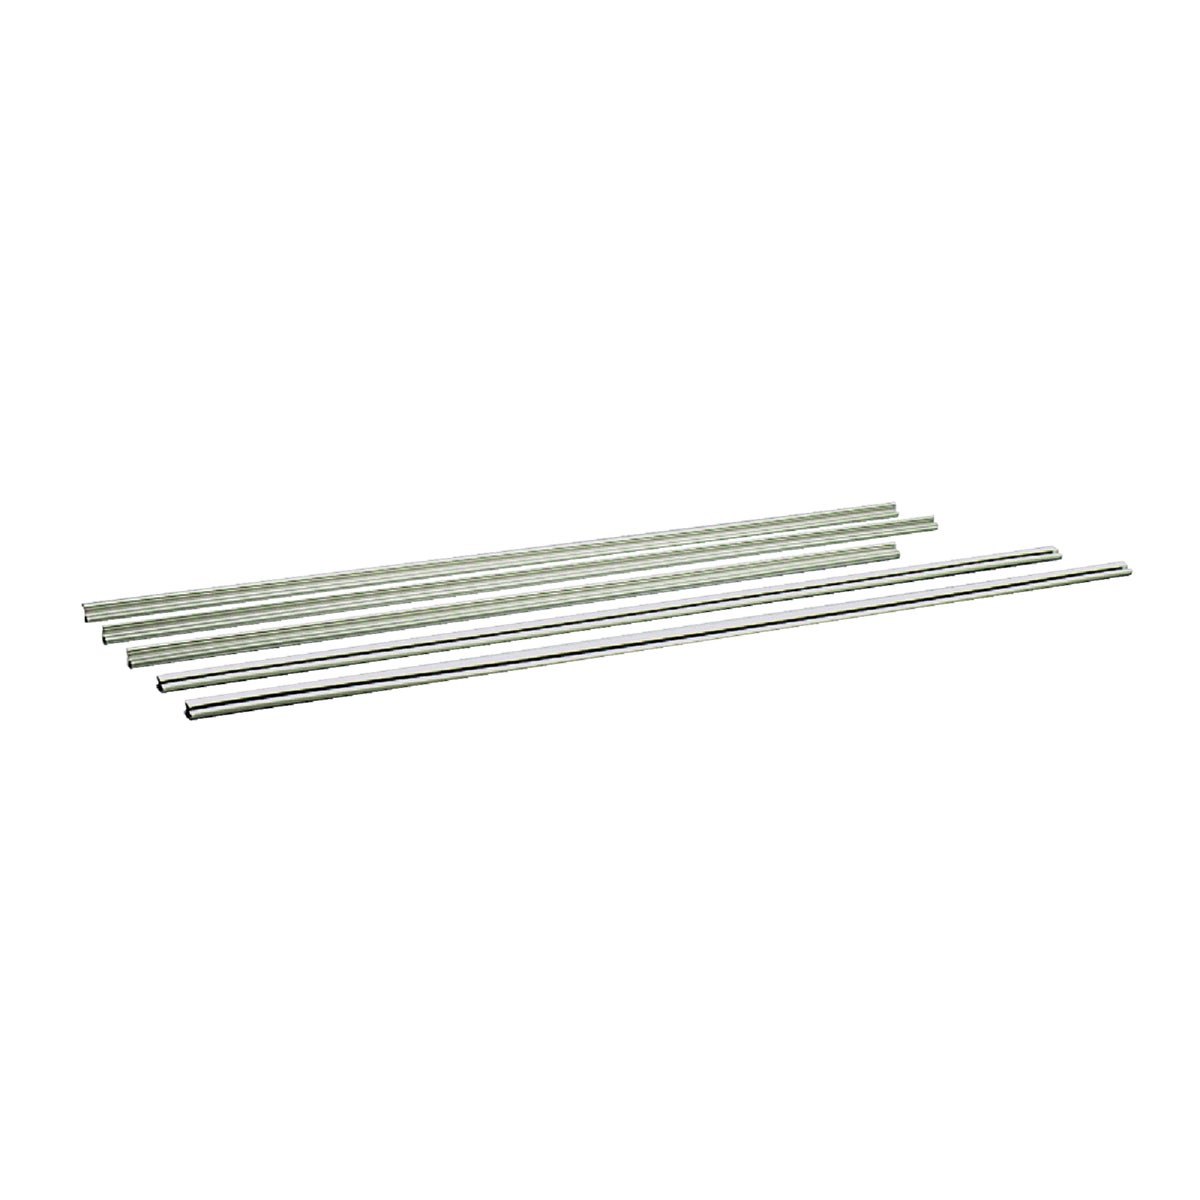 MAGNETIC DR WEATHERSTRIP - 01610 by M D Building Prod